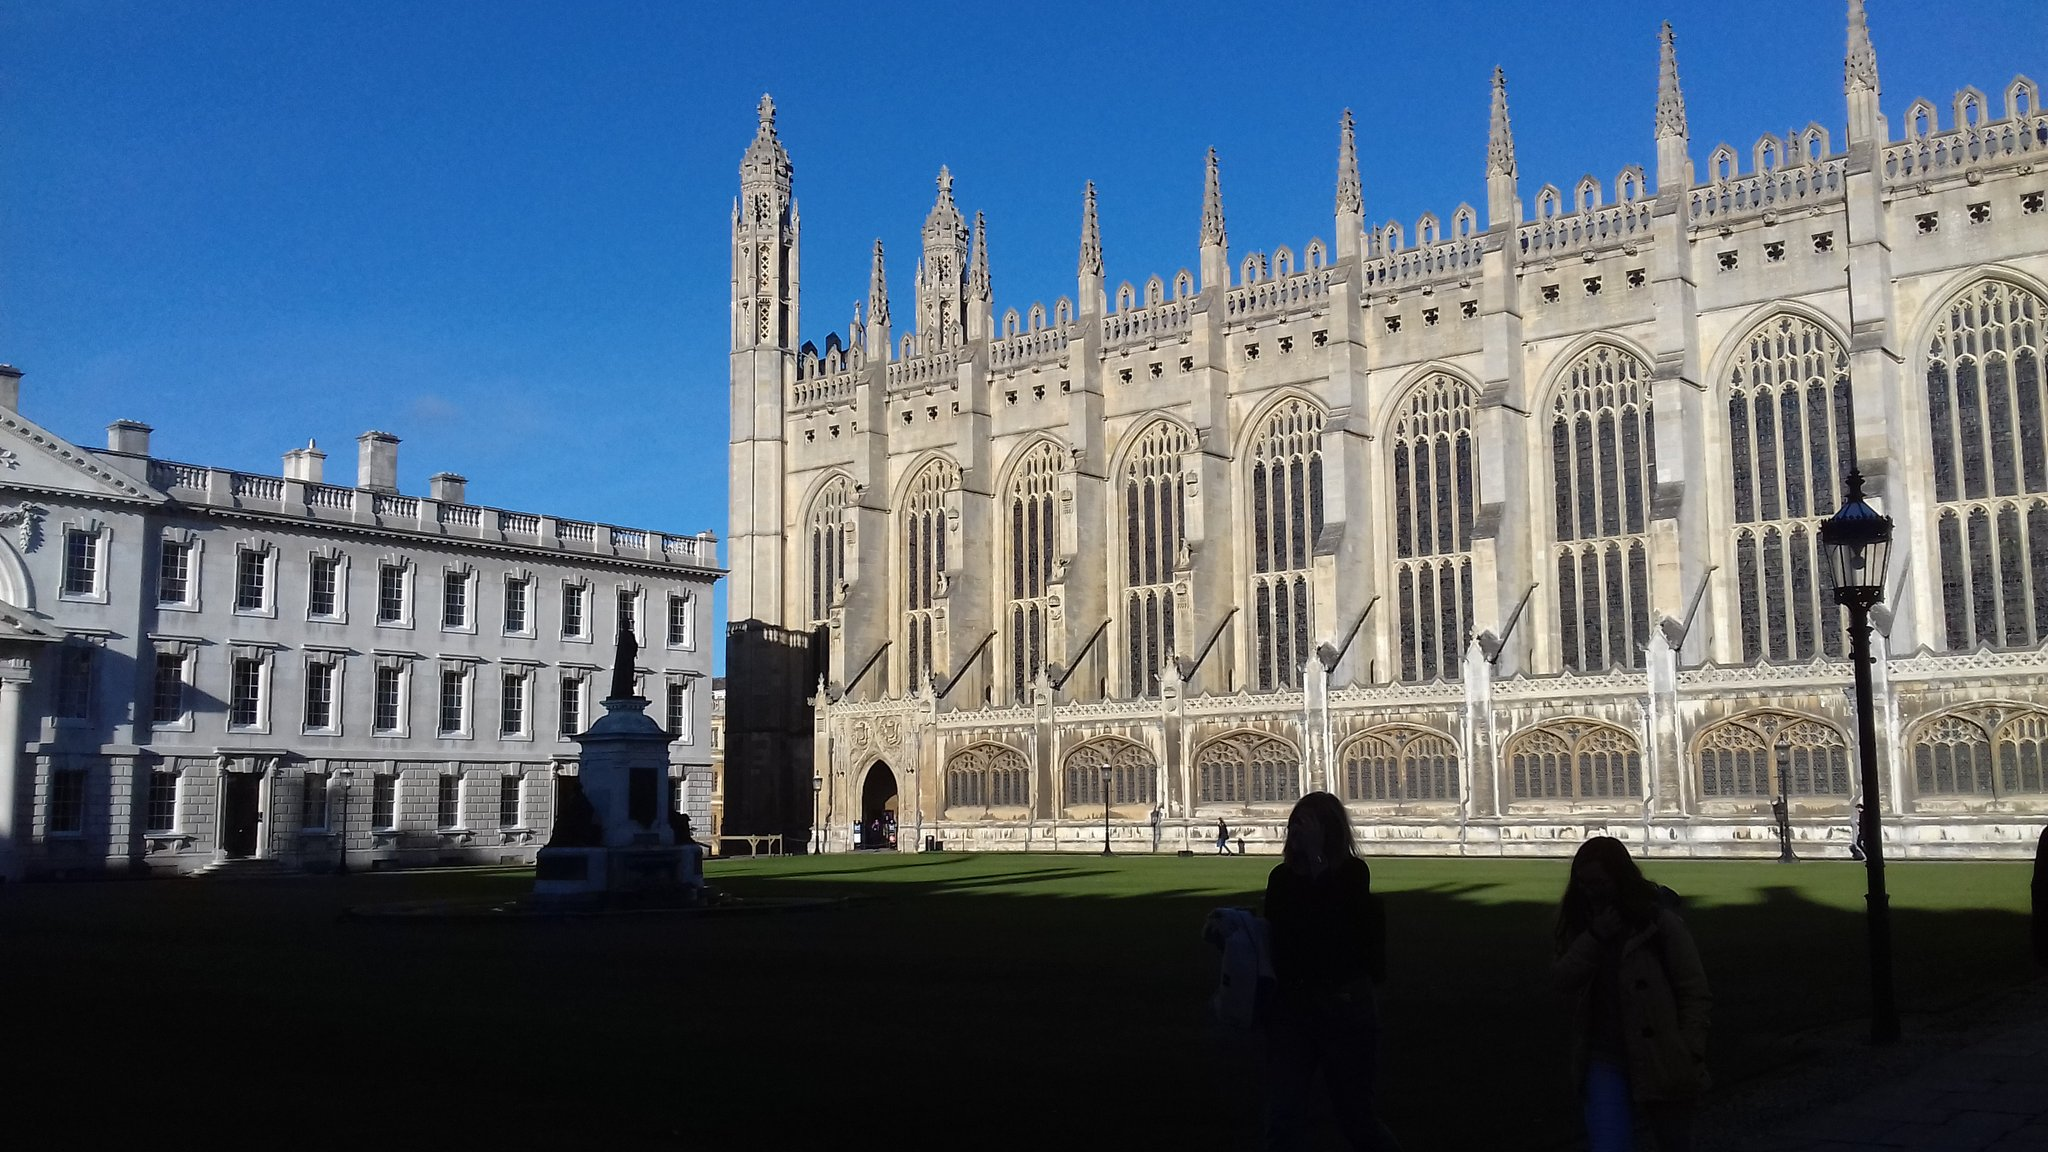 Great location for historic libraries forum conference @Kings_College & beautiful morning in cambridge #HLFImpact16 https://t.co/UJaVggTG00